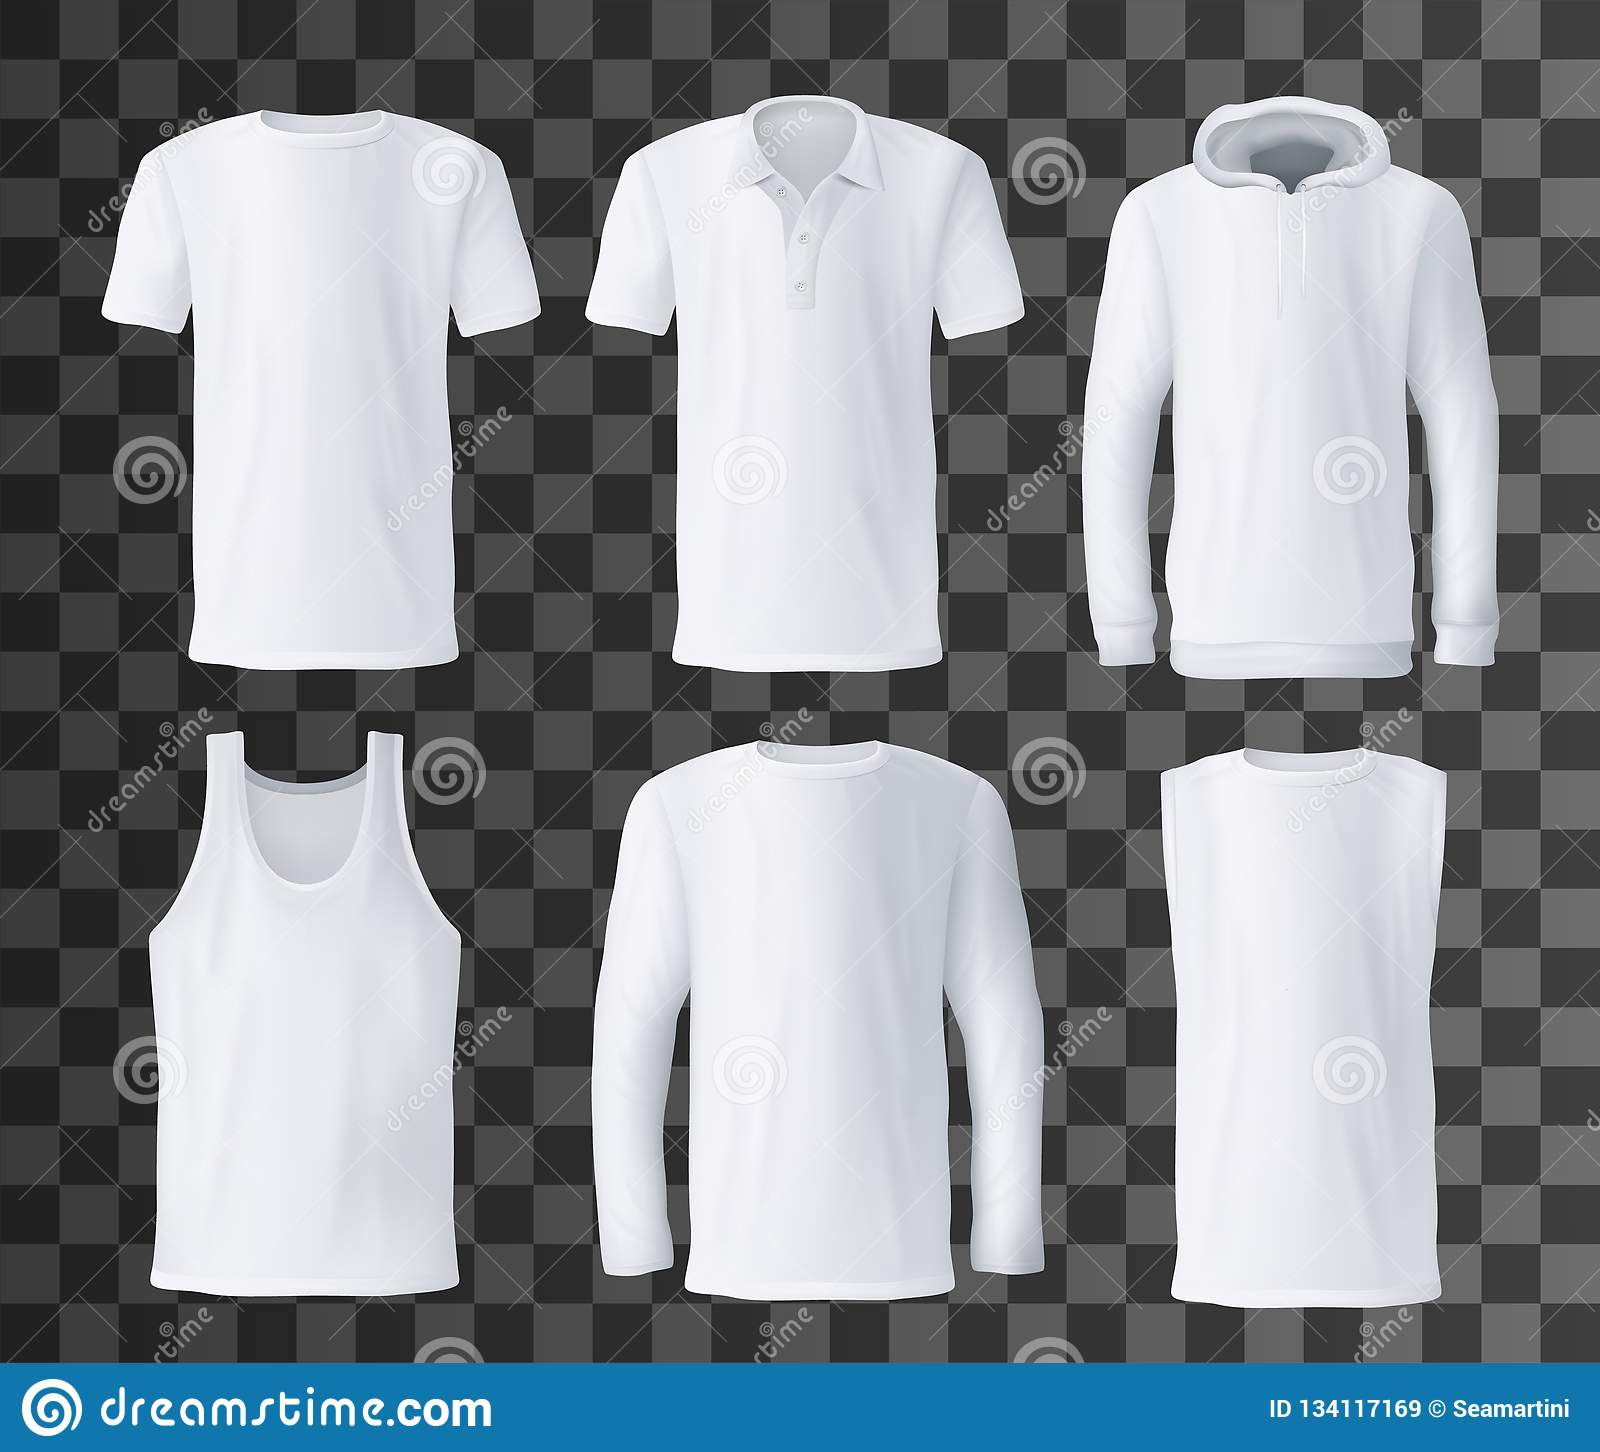 9028b0169d962 T-shirt template with front view of white men shirts mockup. Polo